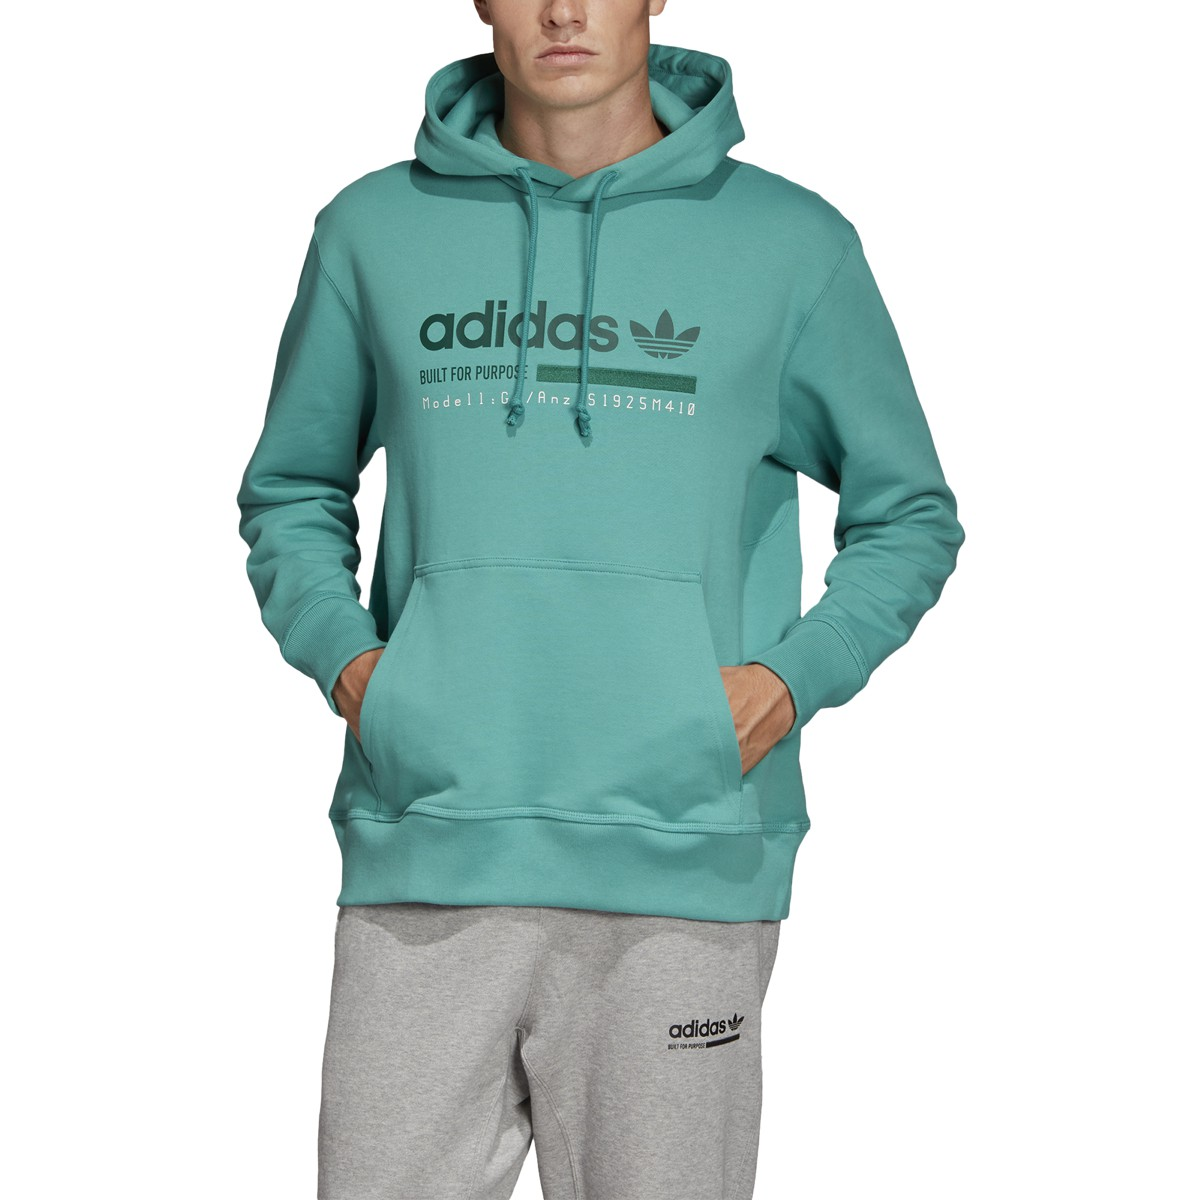 Noche Ambos Prescripción  Adidas Originals Kaval Graphic Mens Hoodie True Green DV1912 | eBay